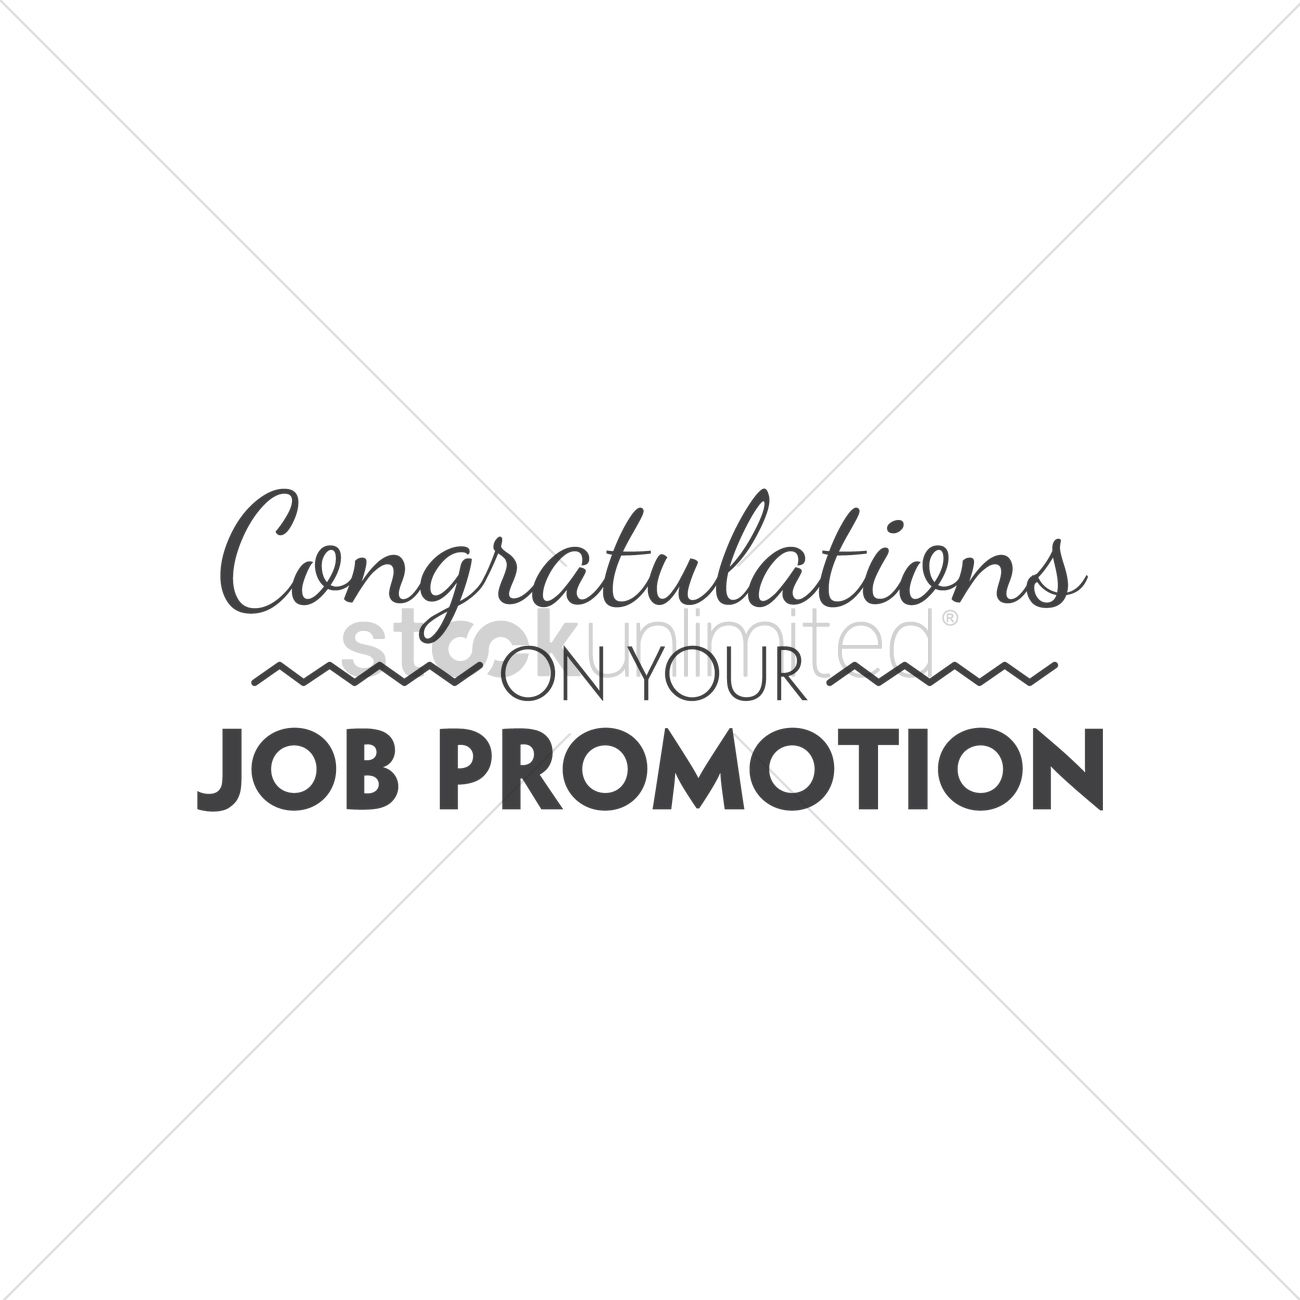 Free Congratulations On Your Job Promotion Stock Vectors